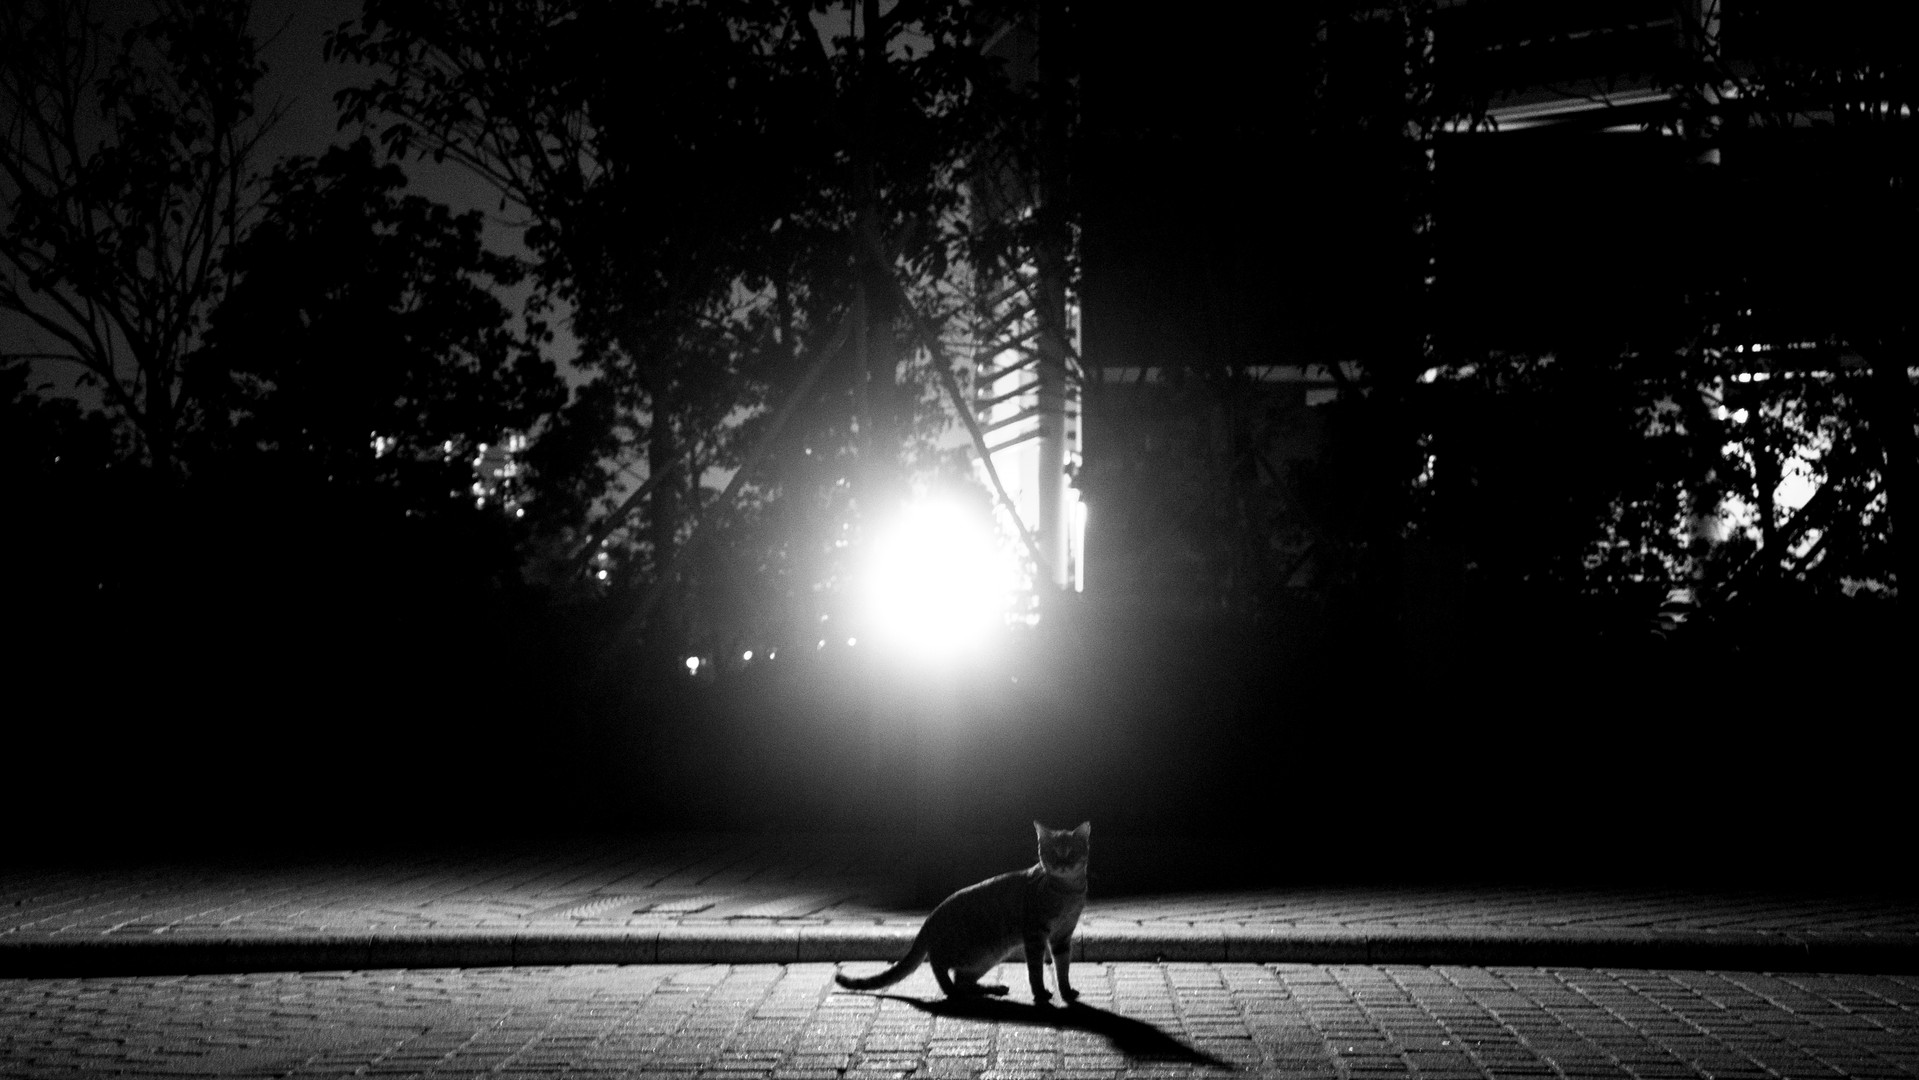 We are night cats